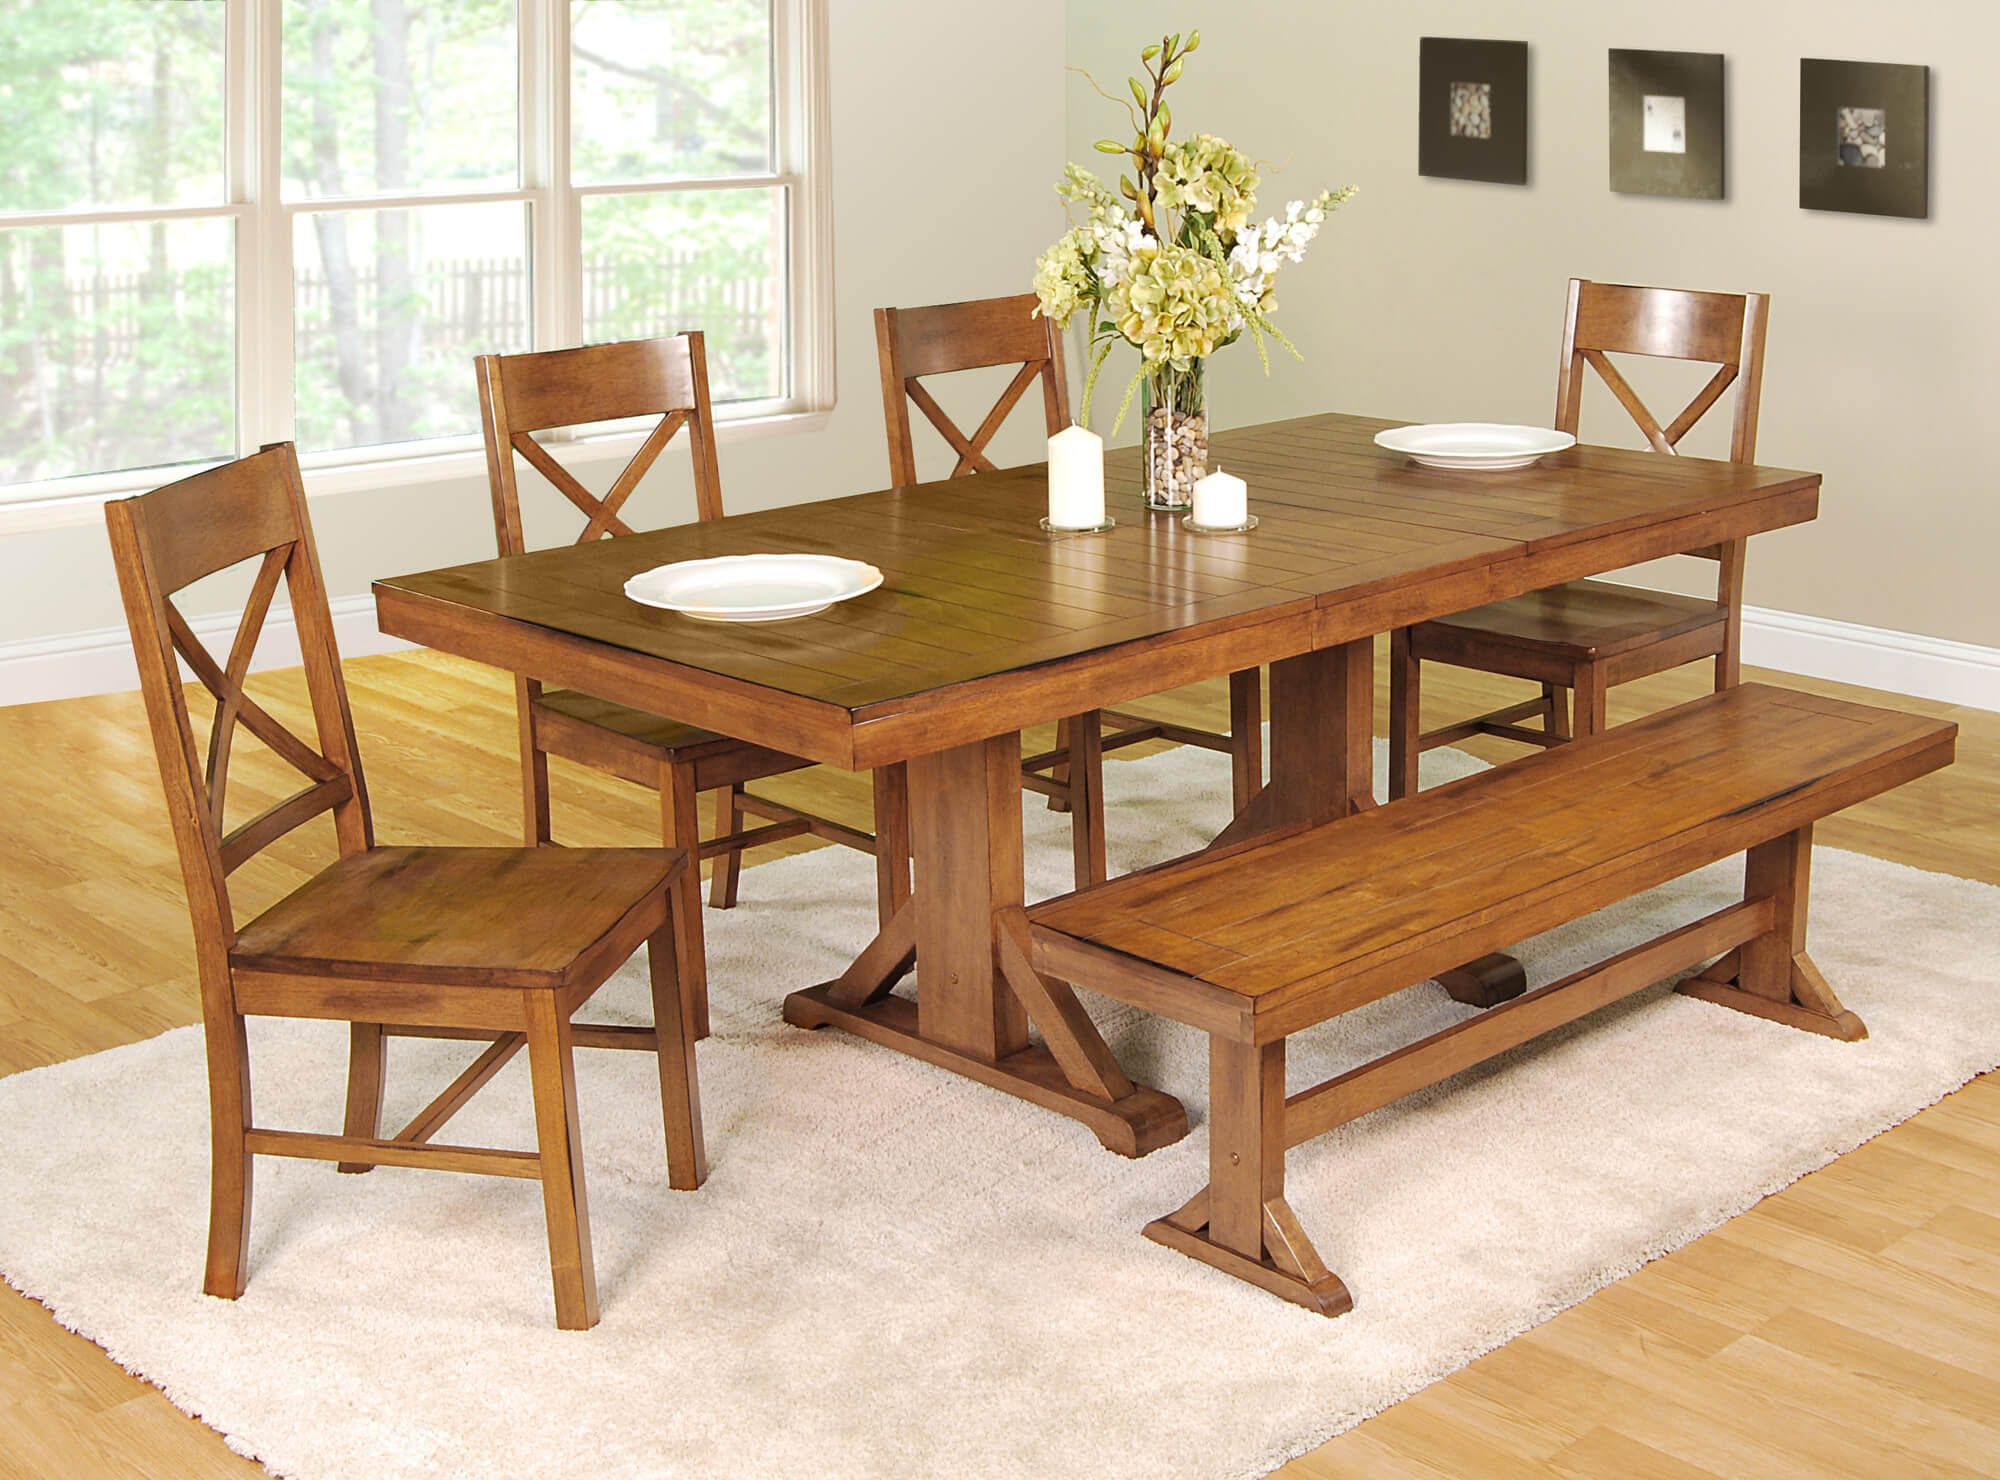 This dining room set with bench is going for the antique look with an antique brown finish that's great for creating a country style dining room (or in-kitchen dining area).